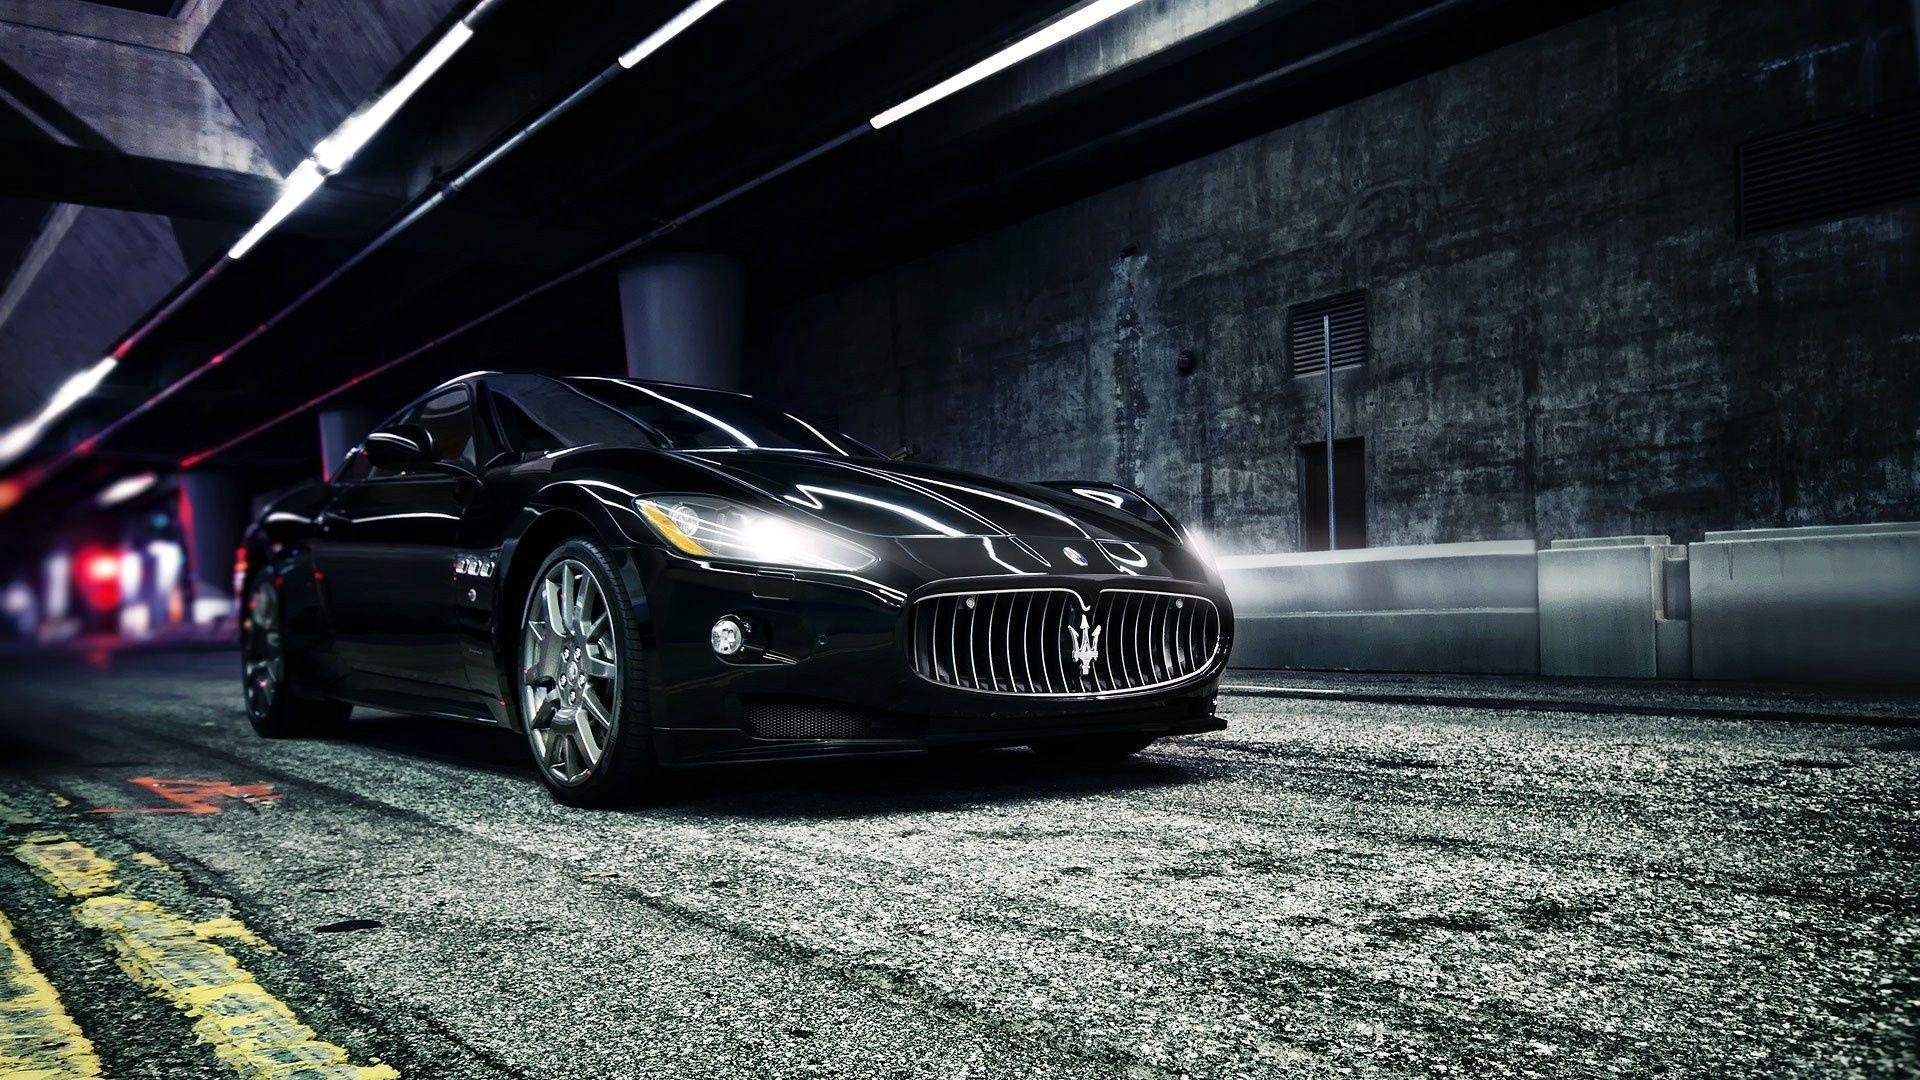 Maserati Wallpapers | HD Wallpapers Pulse